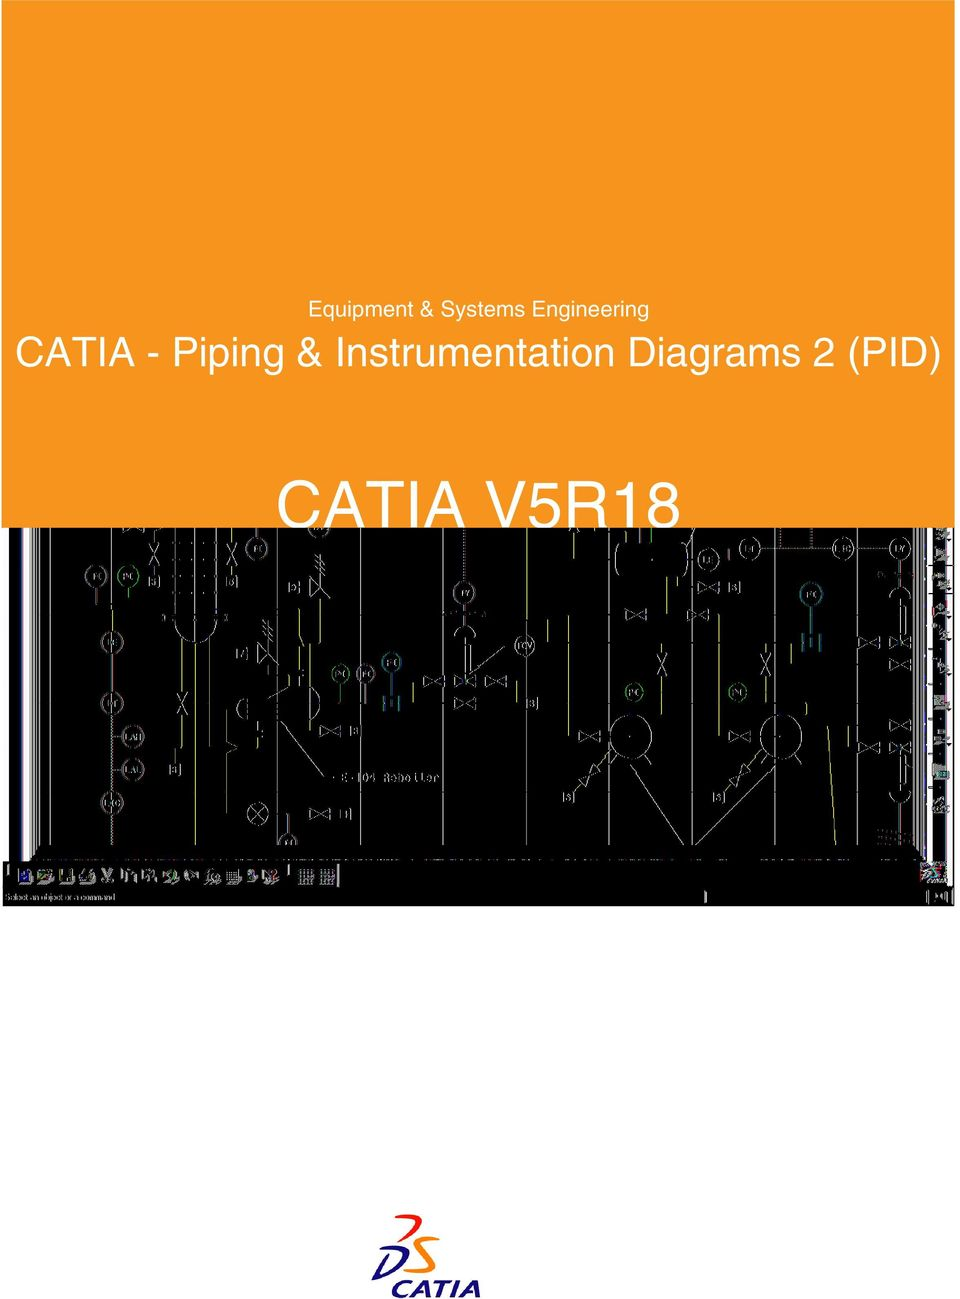 hight resolution of 2 equipment systems engineering catia piping instrumentation diagrams provide a complete set of tools to create modify analyze and document the